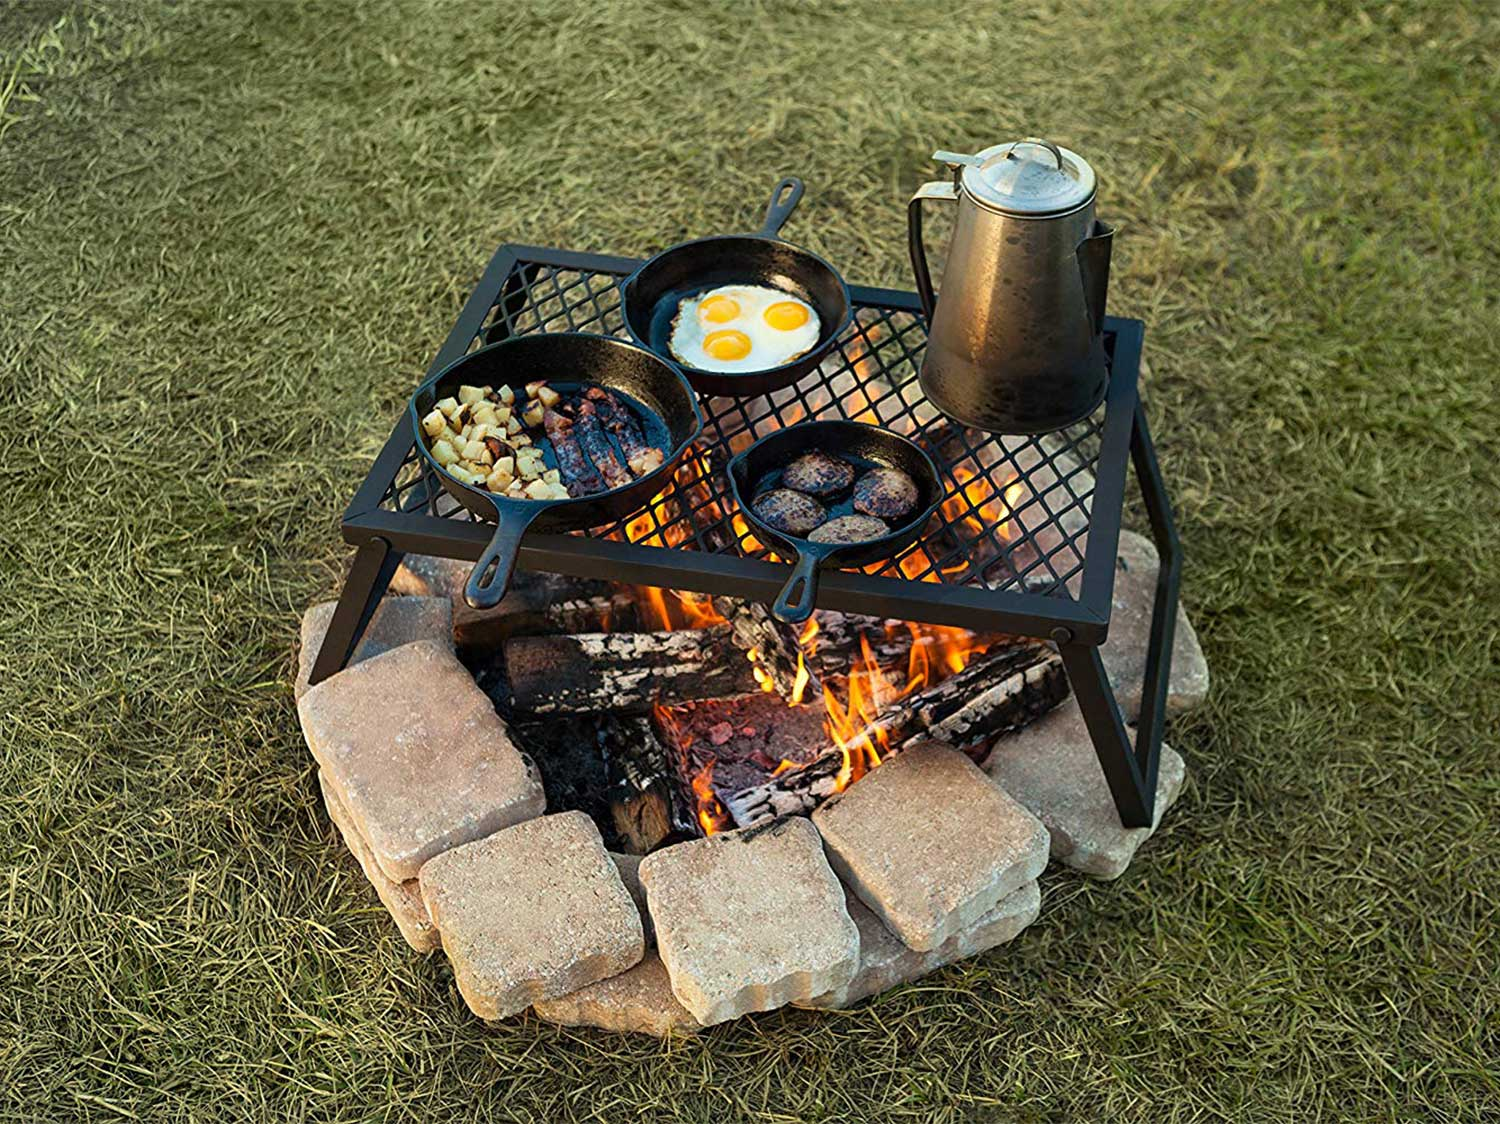 3 Easy Ways to Cook over an Open Fire